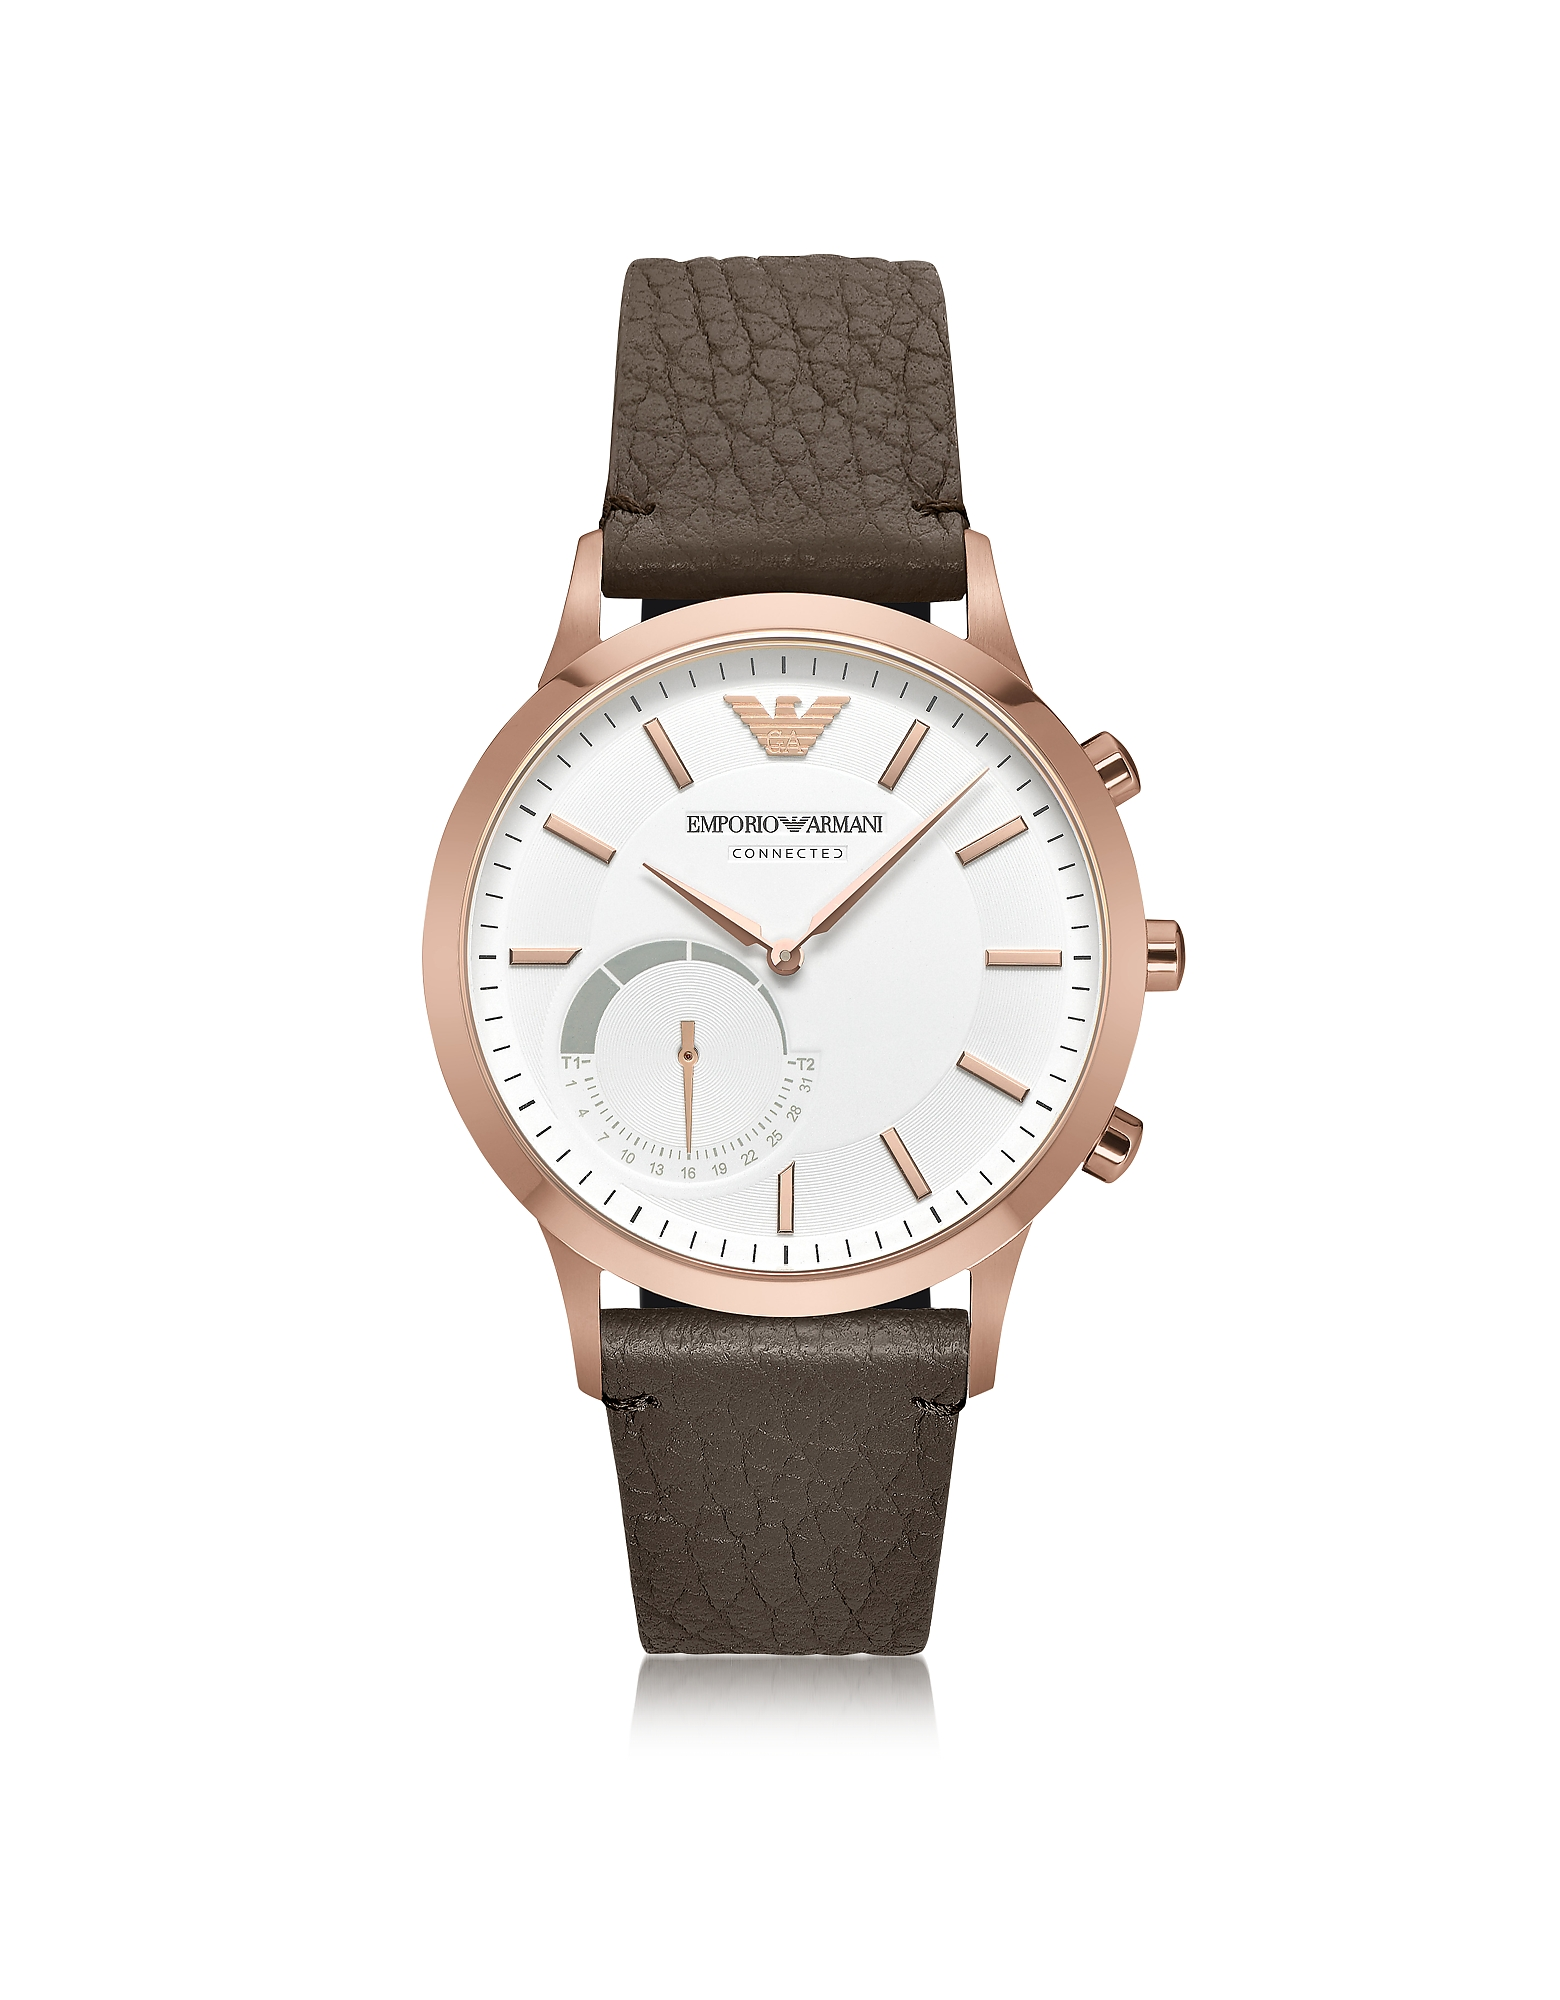 Connected Rose Gold-Tone PVD Stainless Steel Hybrid Men's Smartwatch w/Leather Strap Emporio Armani